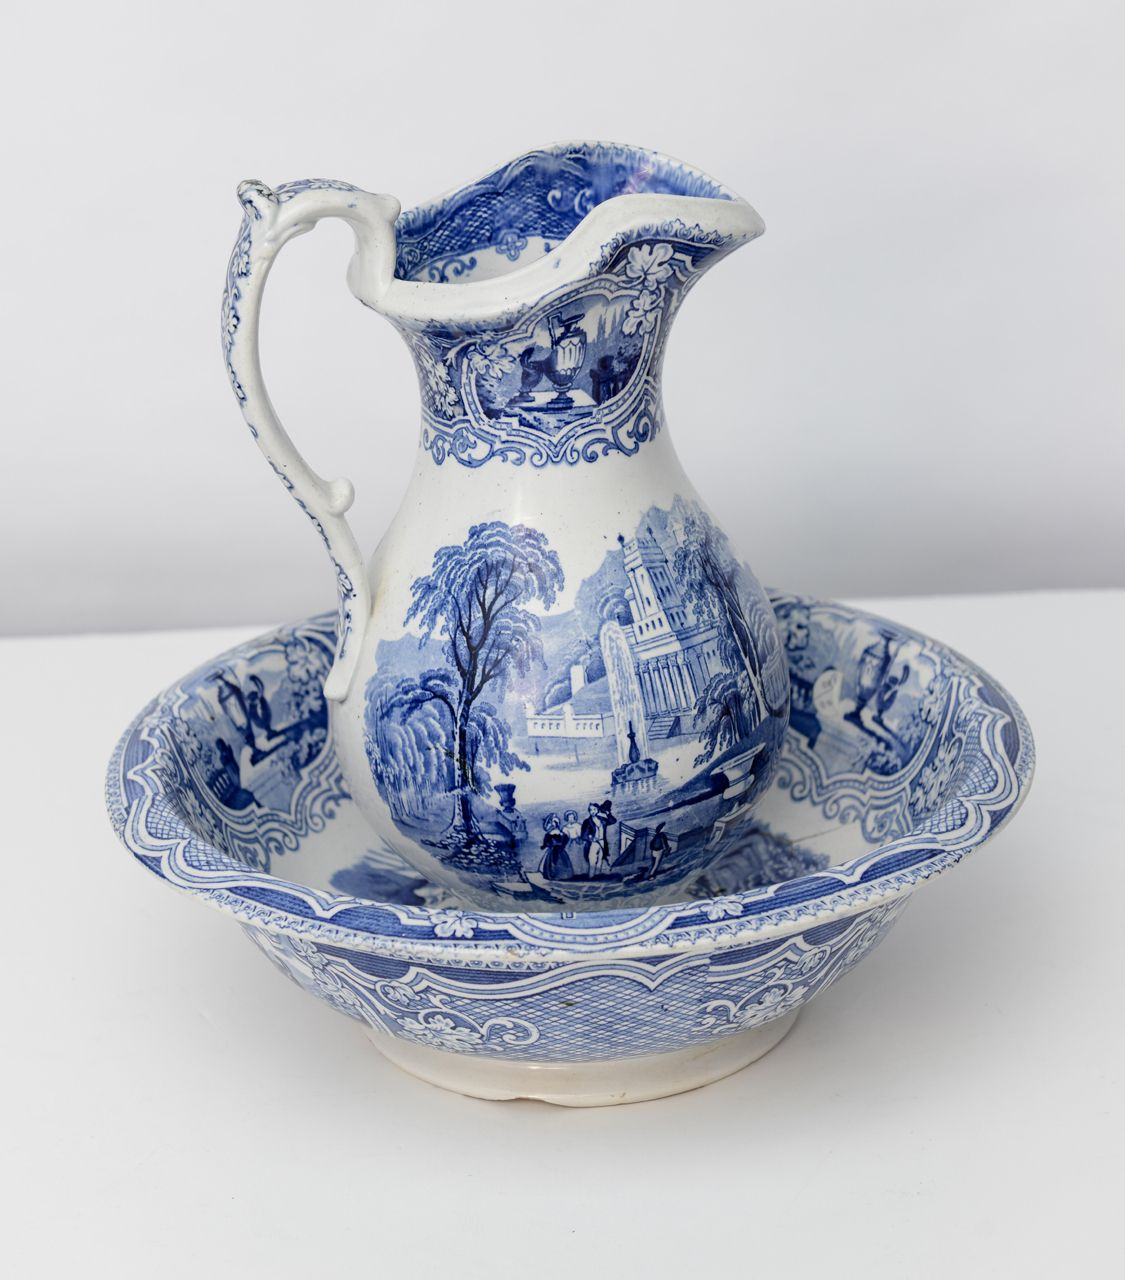 Lovely old transfer ware pitcher and bowl in deep blue and ...